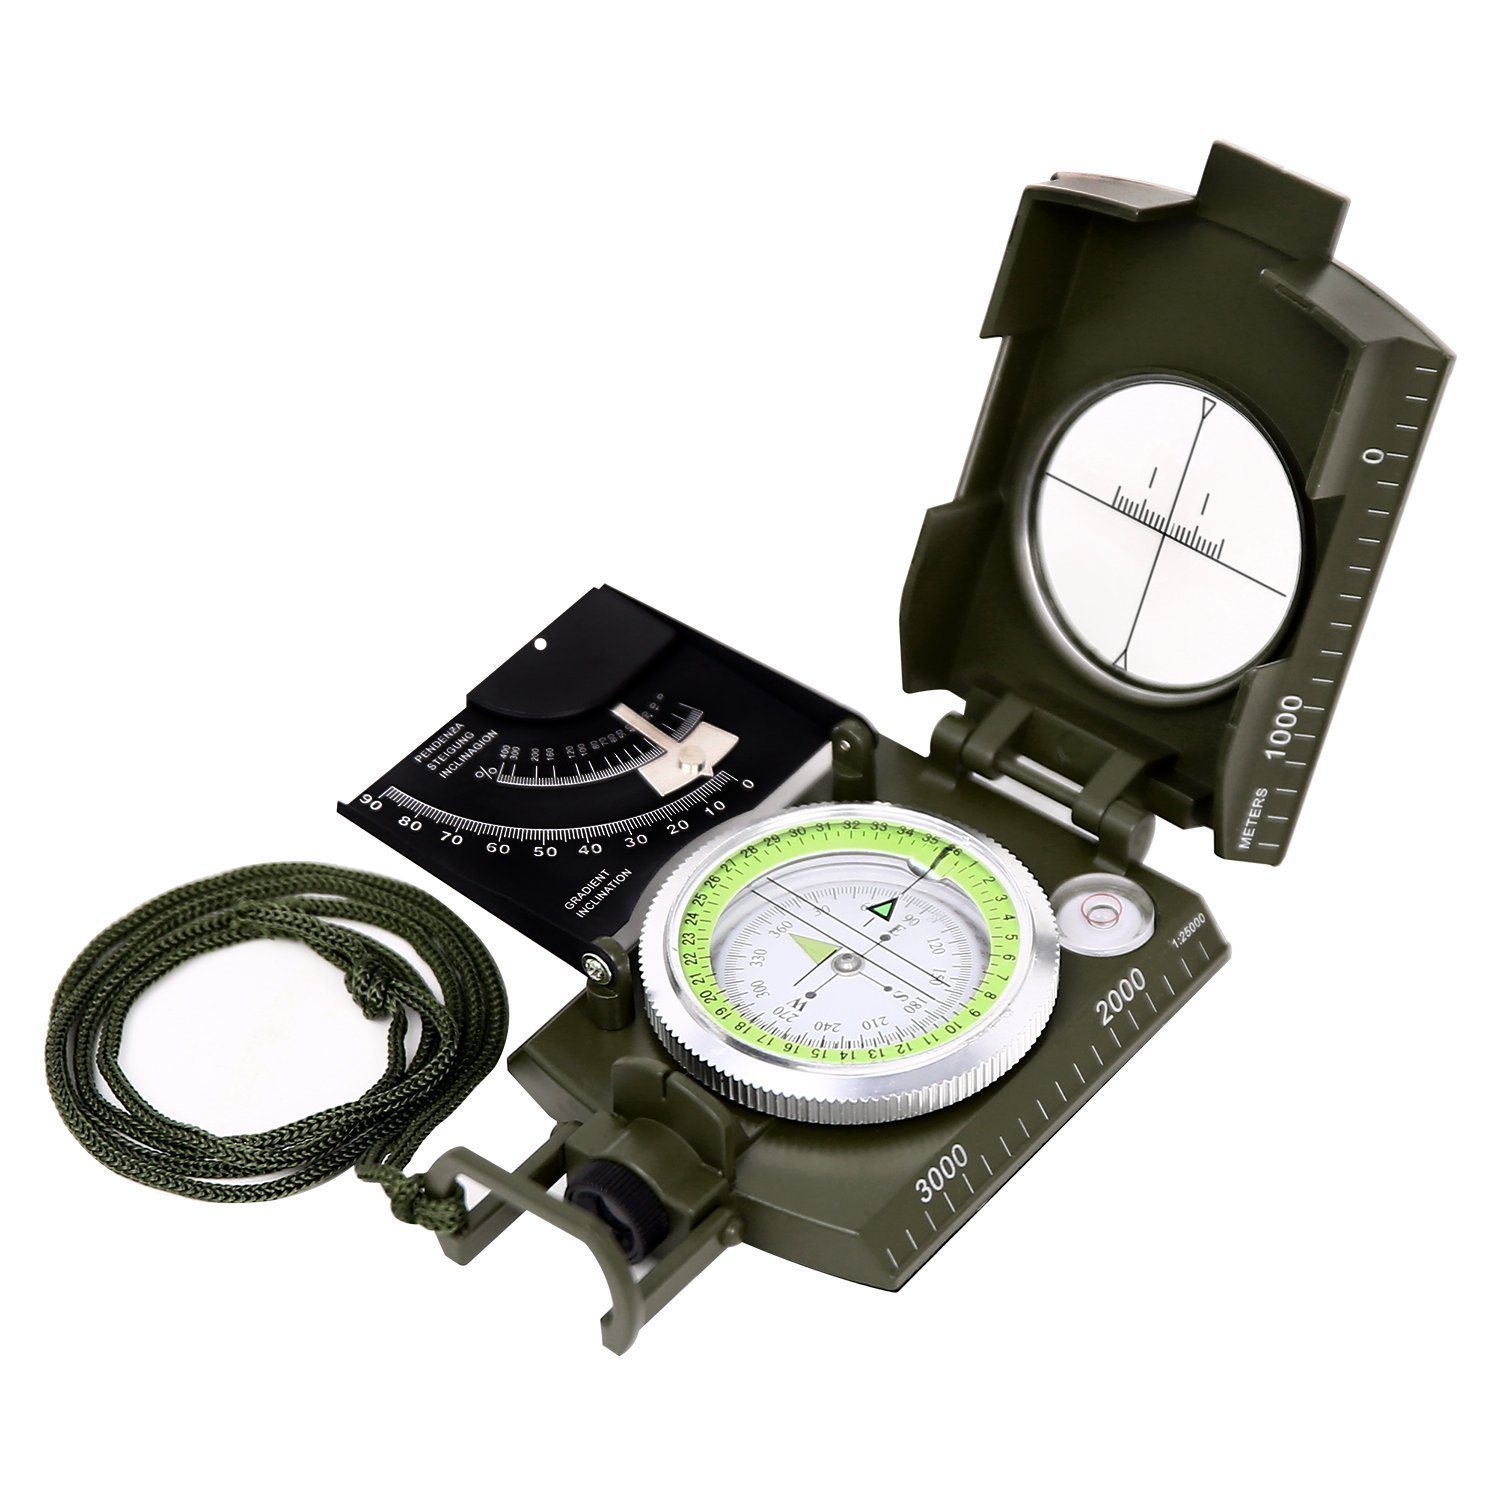 Sportneer Multifunctional Military Lensatic Sighting Compass with Inclinometer and Carrying Bag Waterproof and Shakeproof